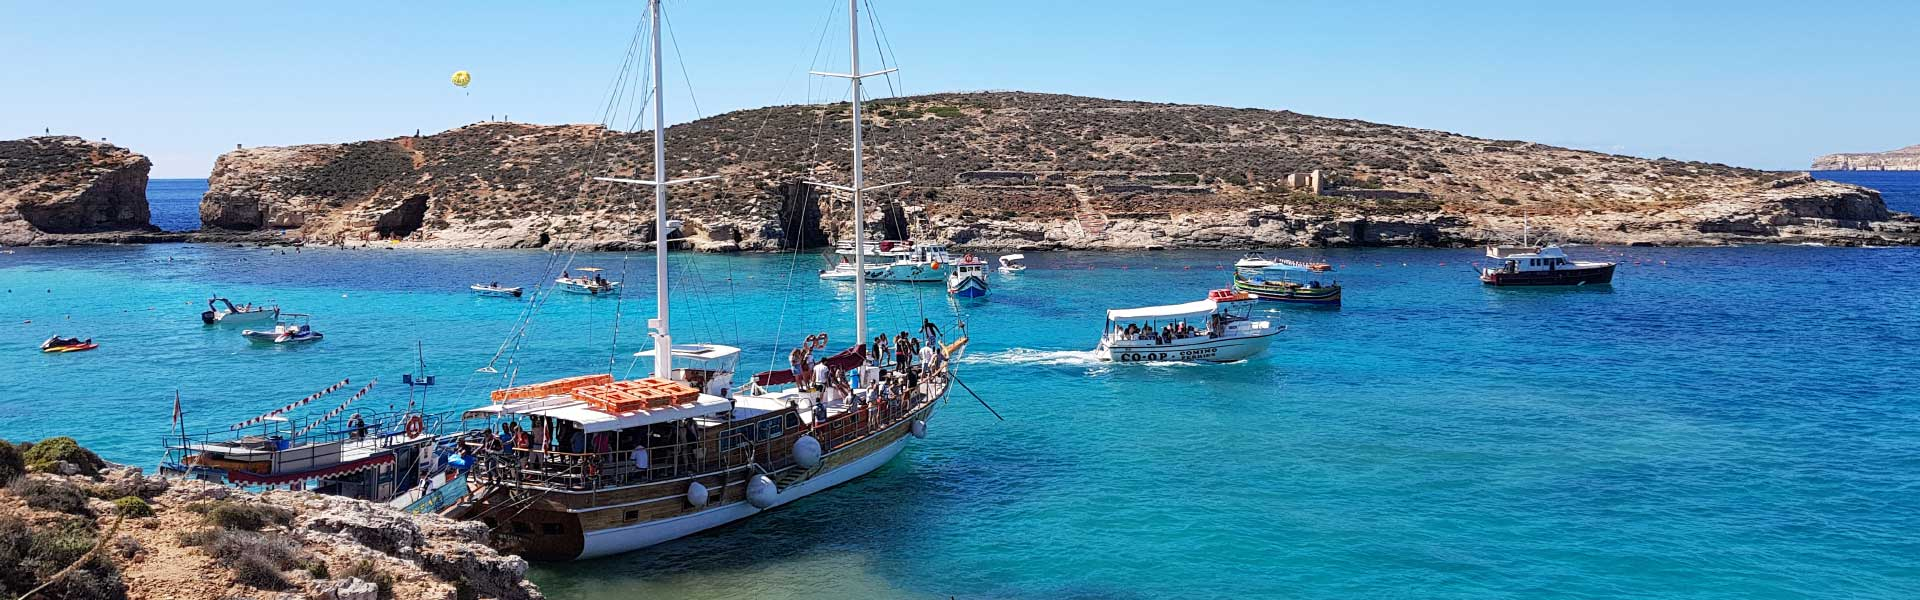 Best tours and day-trips in Malta - our top 10